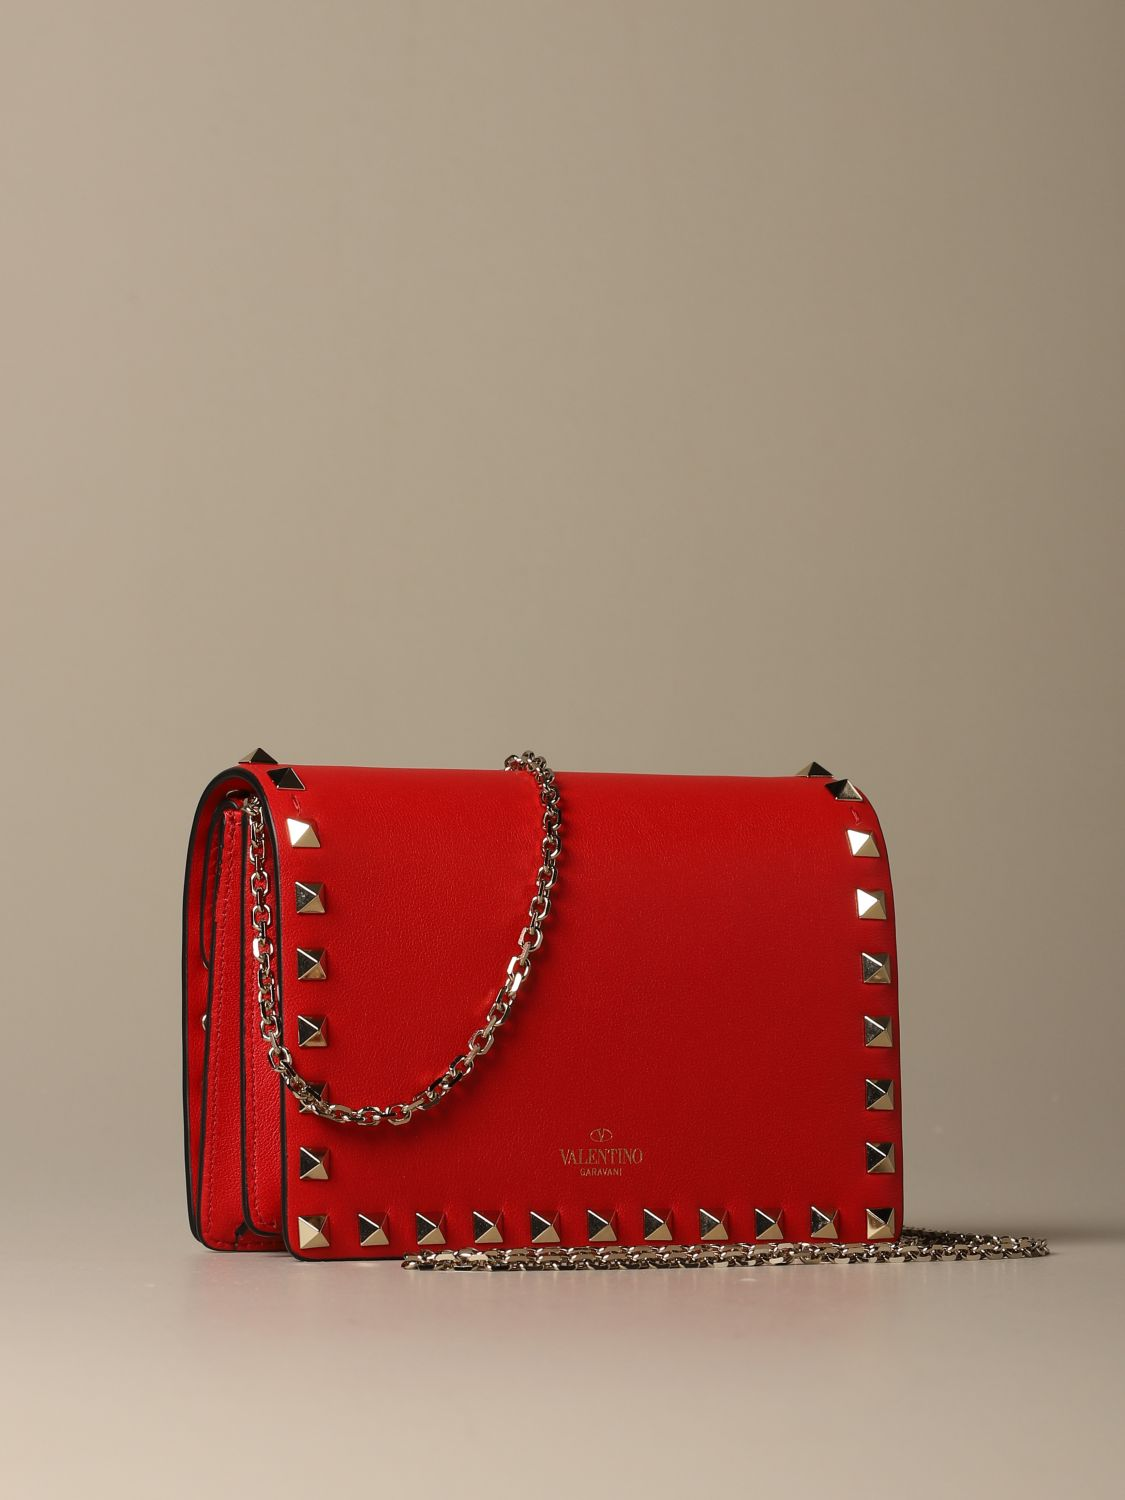 Mini bag Valentino Garavani: Valentino Garavani Rockstud leather shoulder bag red 3